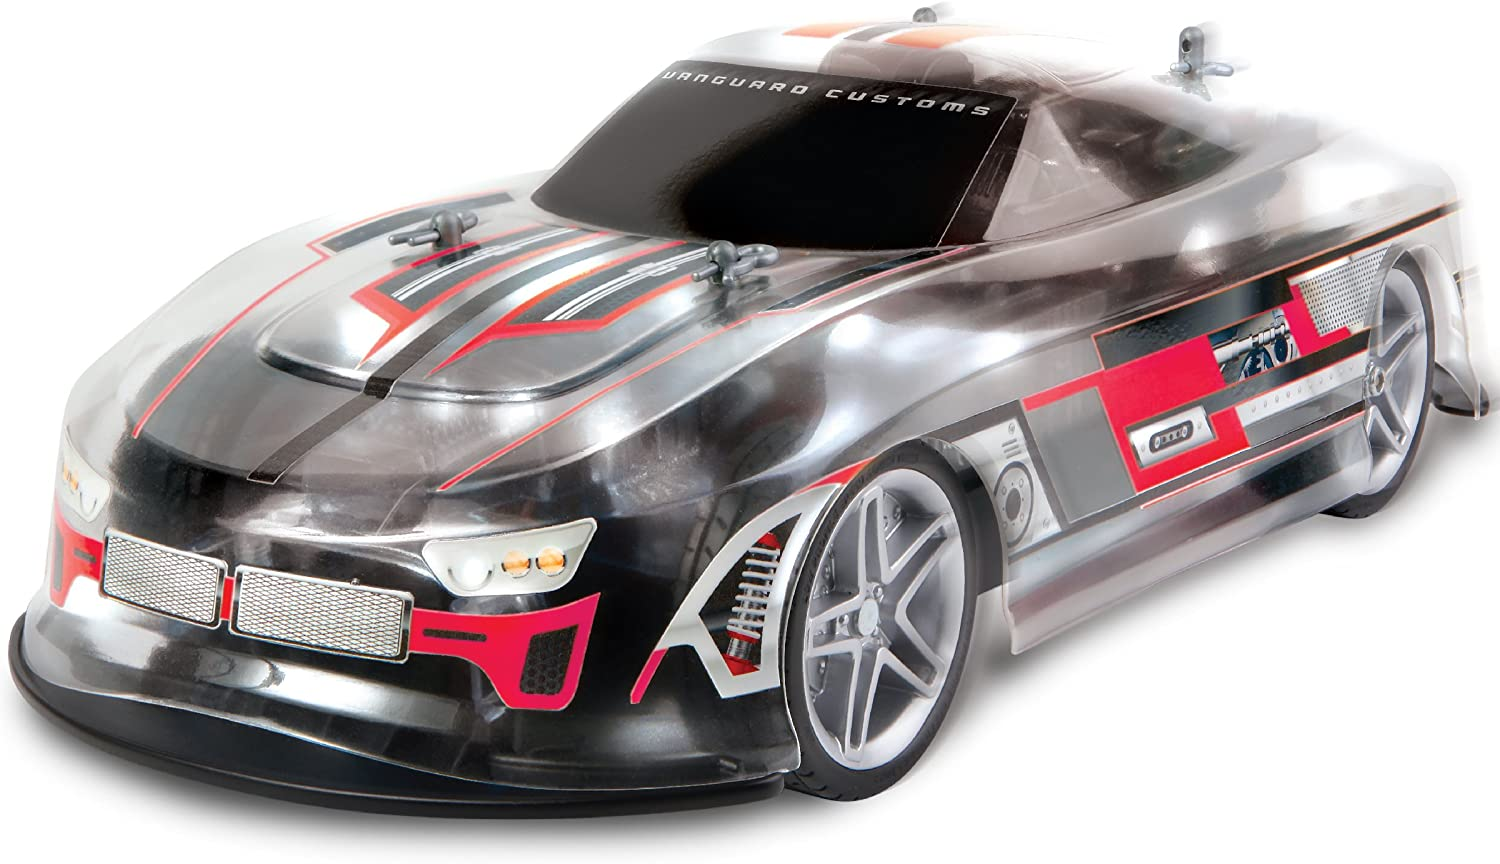 Sharper Image RC LED Lightning Thrasher Race Car Toy, Full Function Wireless Remote Control, 2.4 GHz for Multiple Vehicle Racing, Quick Speed High Performance Tires, Bright Lights for Nighttime